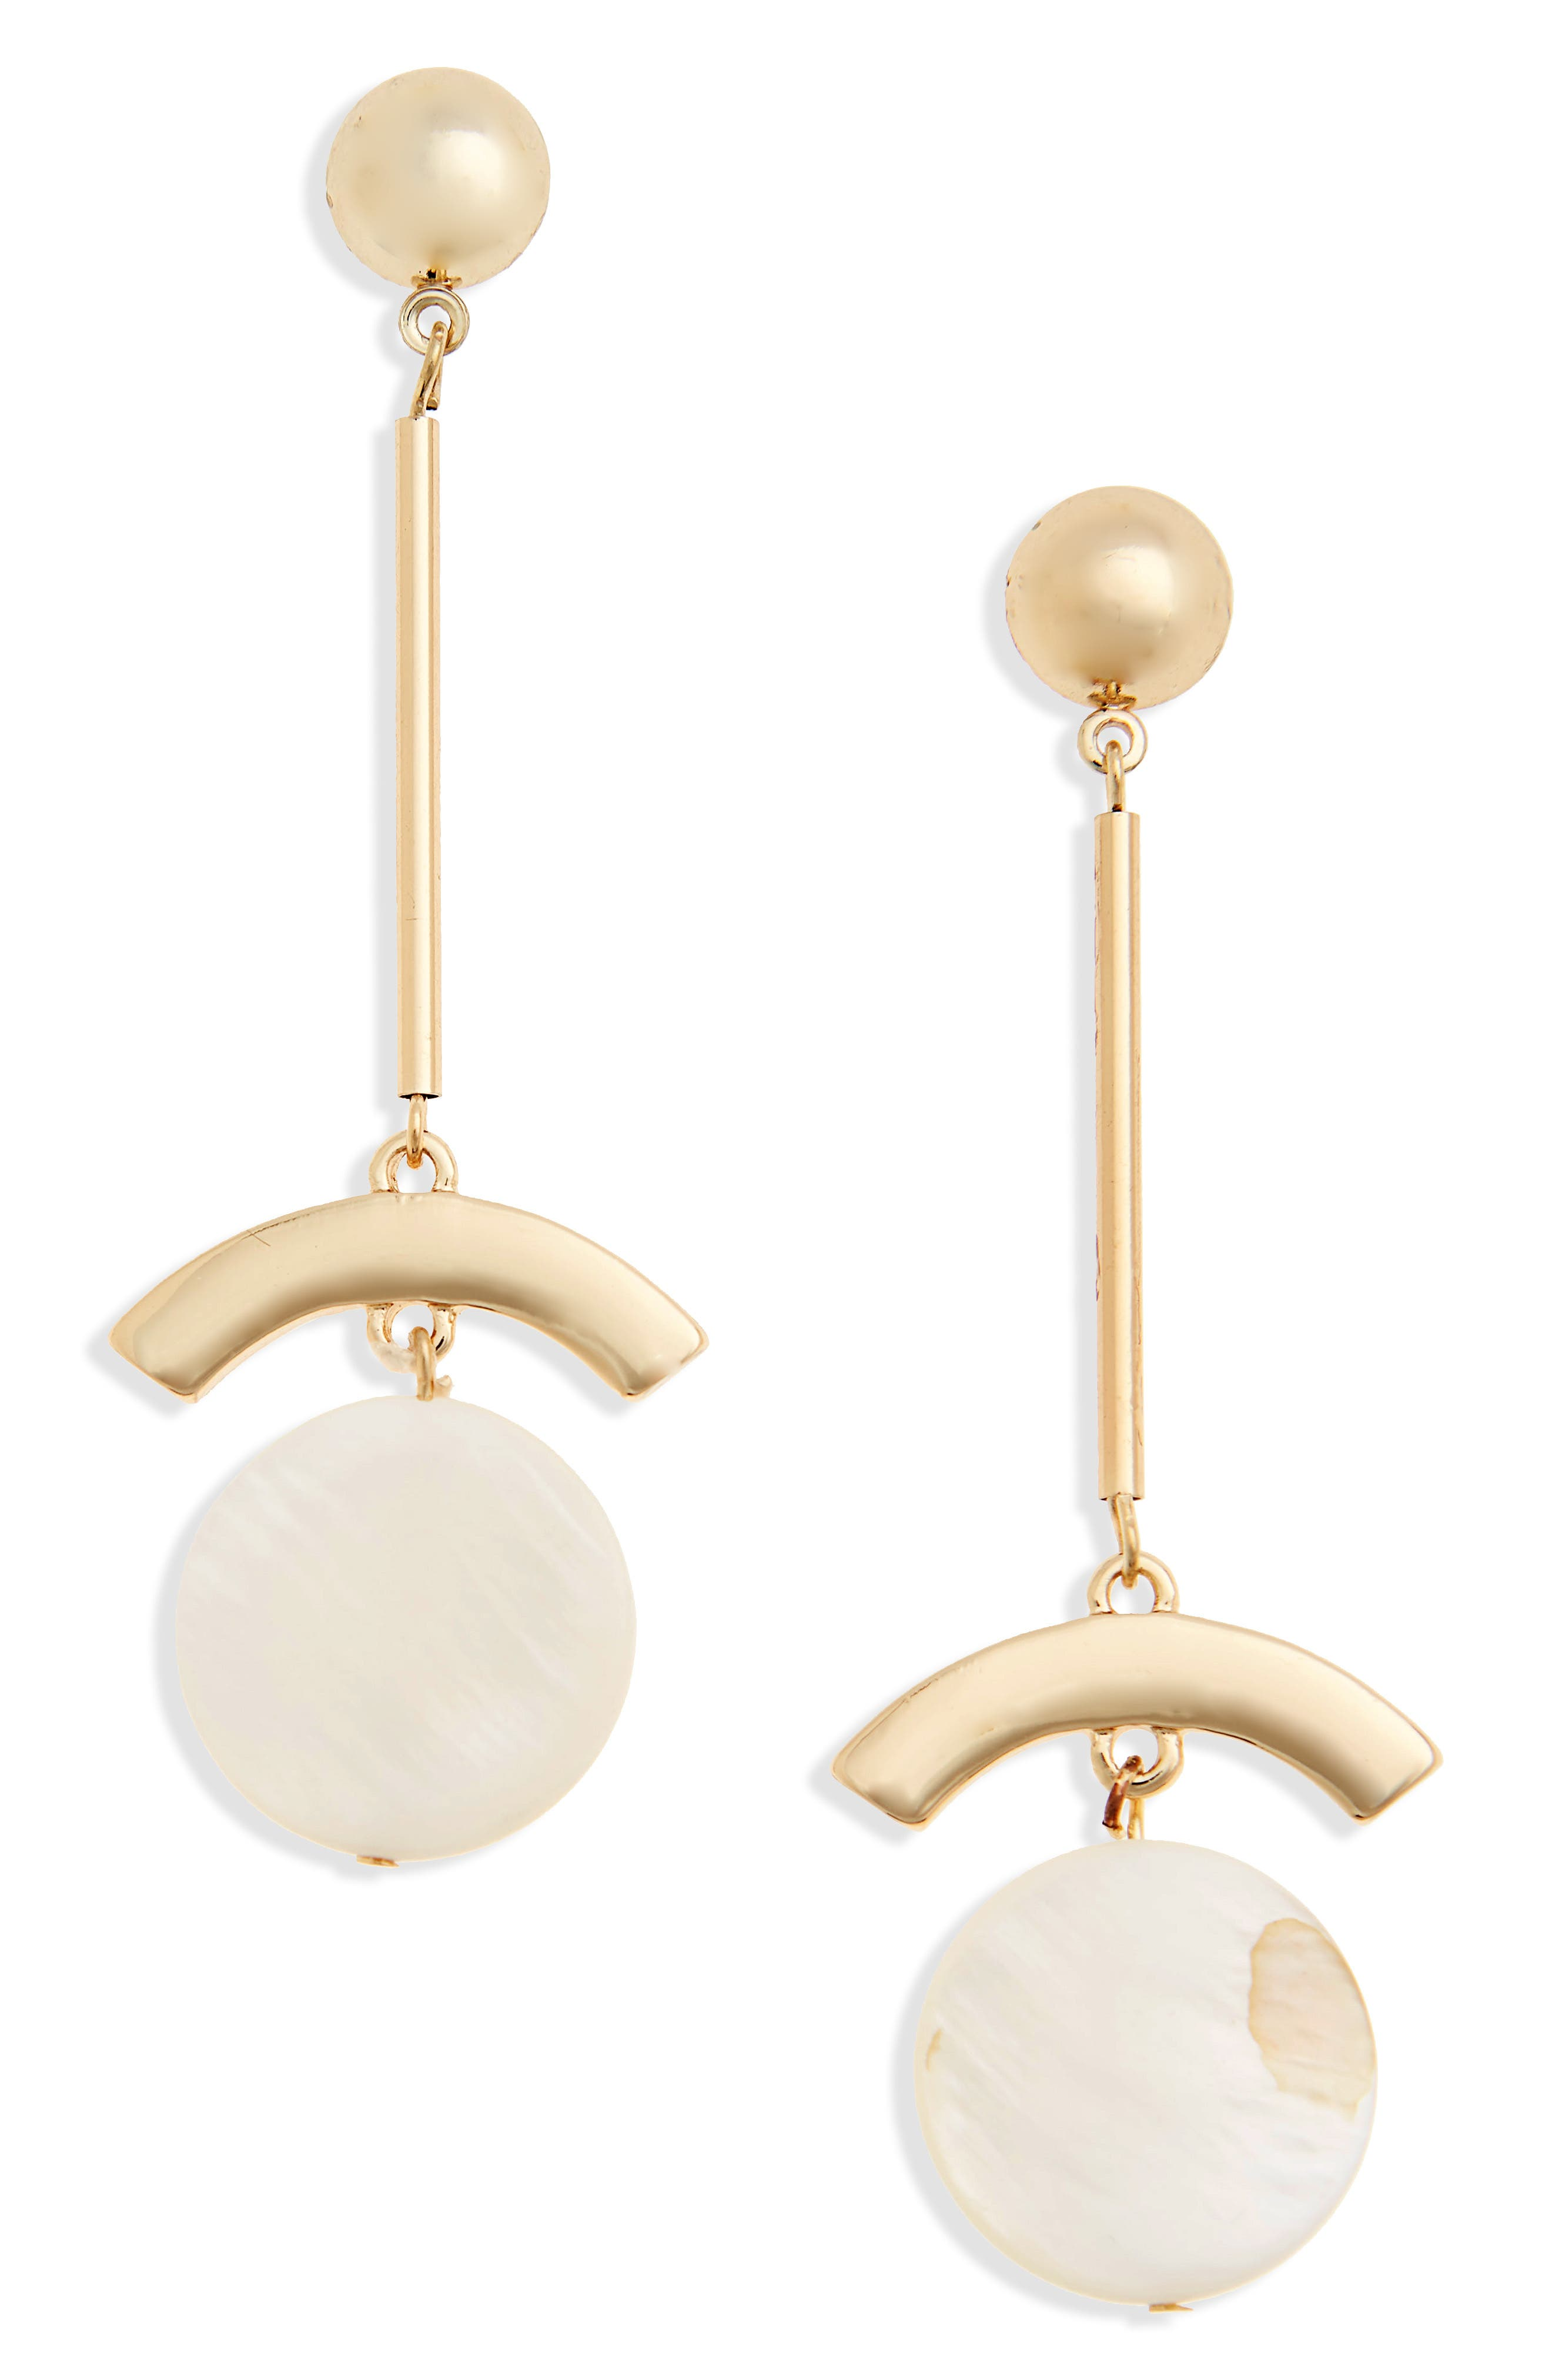 Mother of Pearl Drop Earrings,                             Main thumbnail 1, color,                             Gold/ White